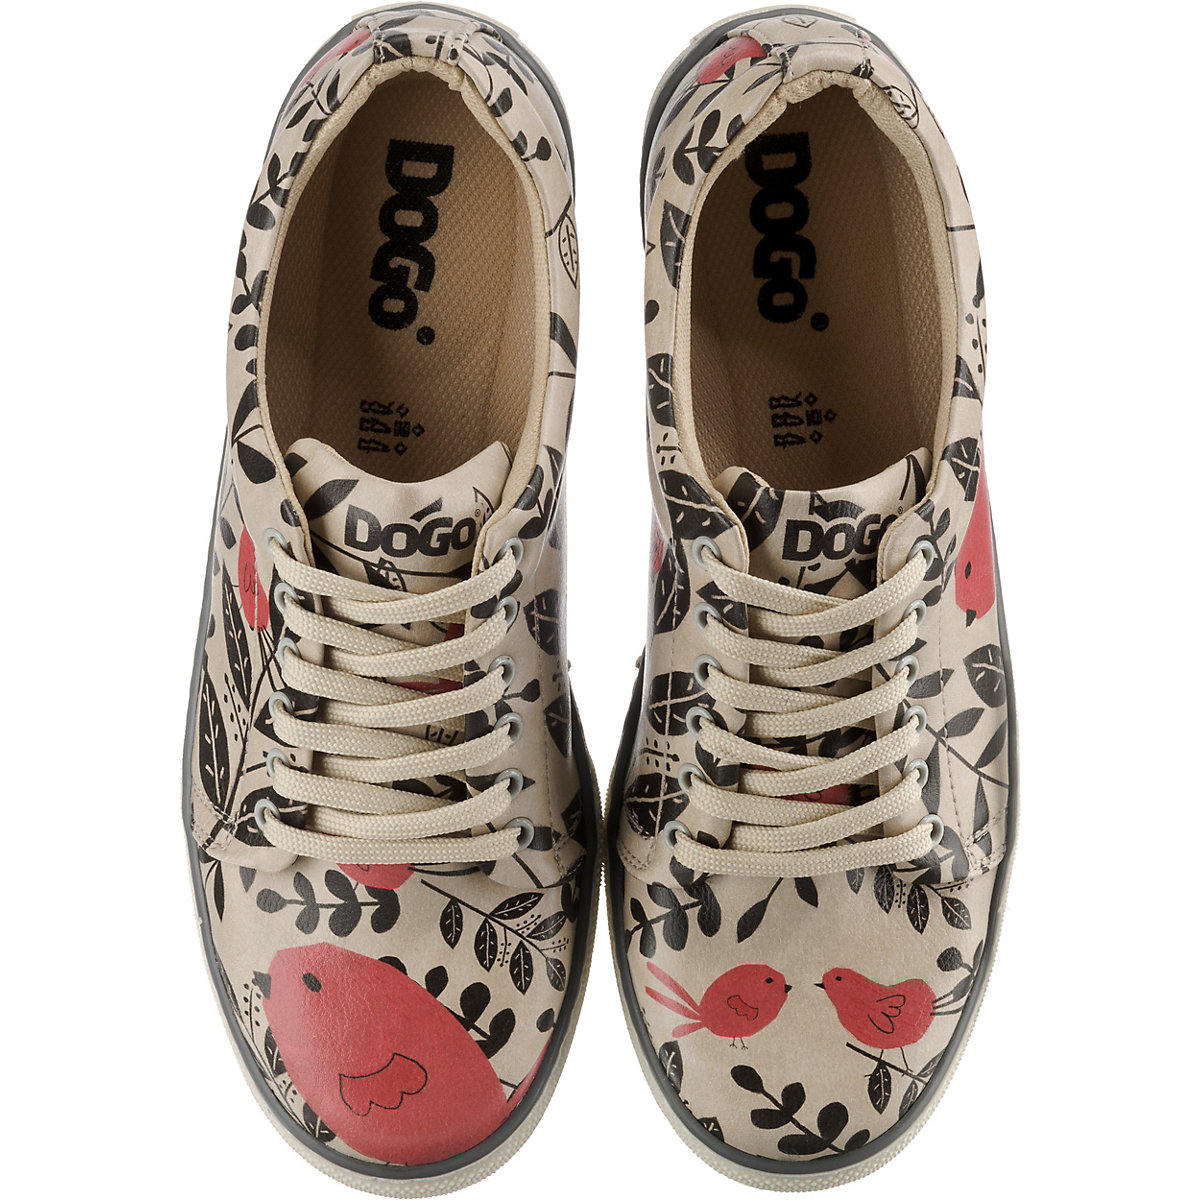 Dogo Shoes, If I Fell Sneakers Low, Mehrfarbig Artikelnummer:10311261